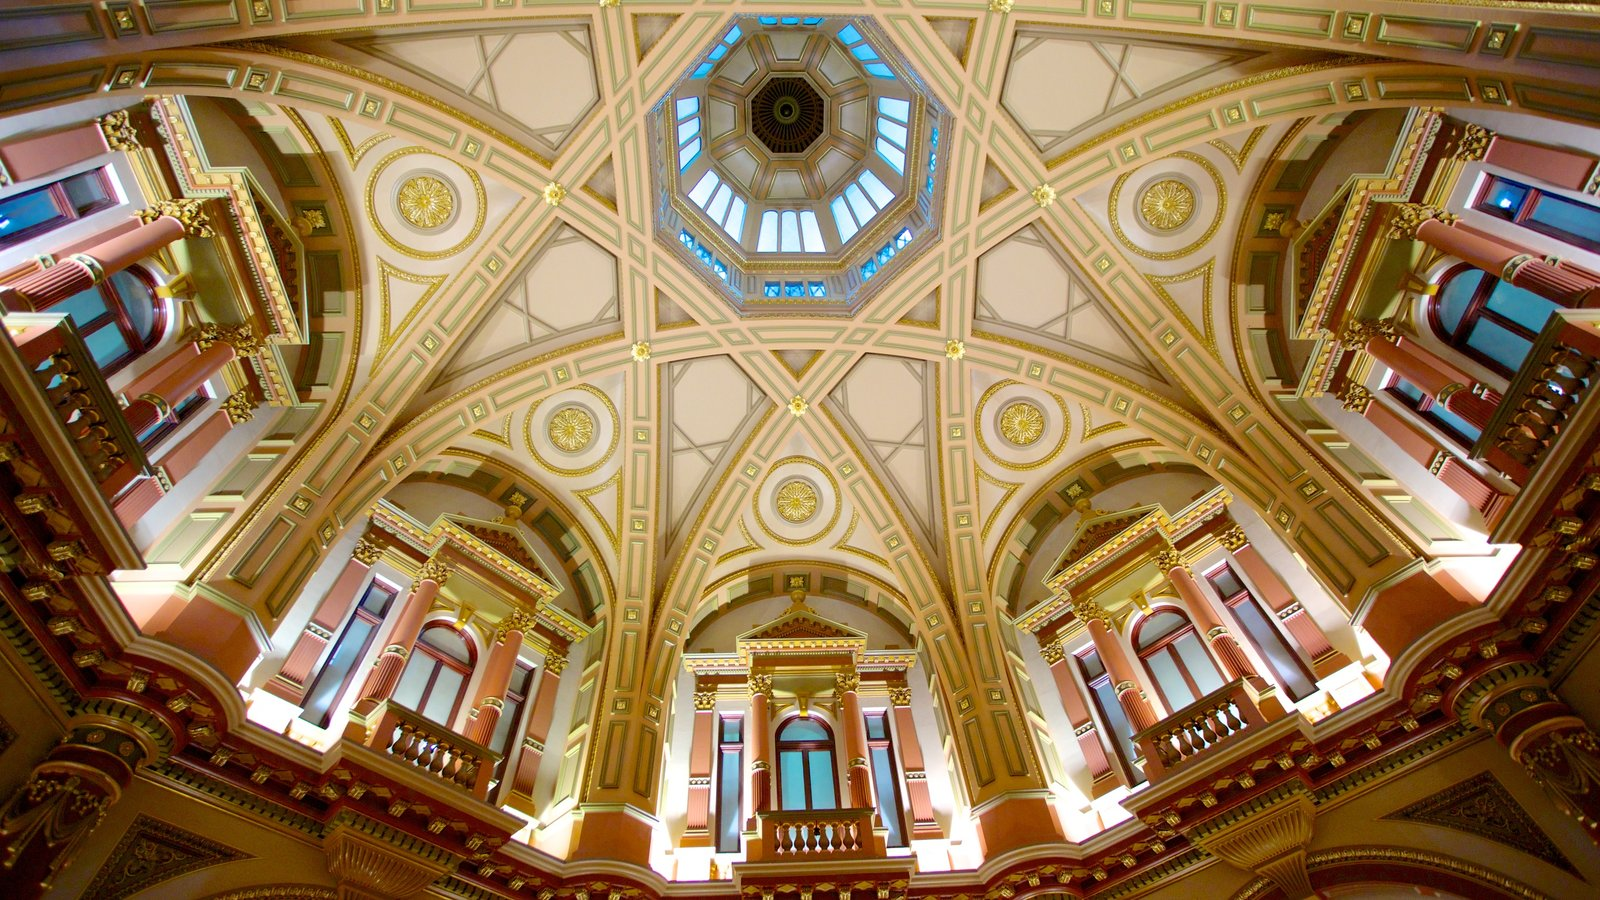 Collins Street showing interior views and heritage architecture